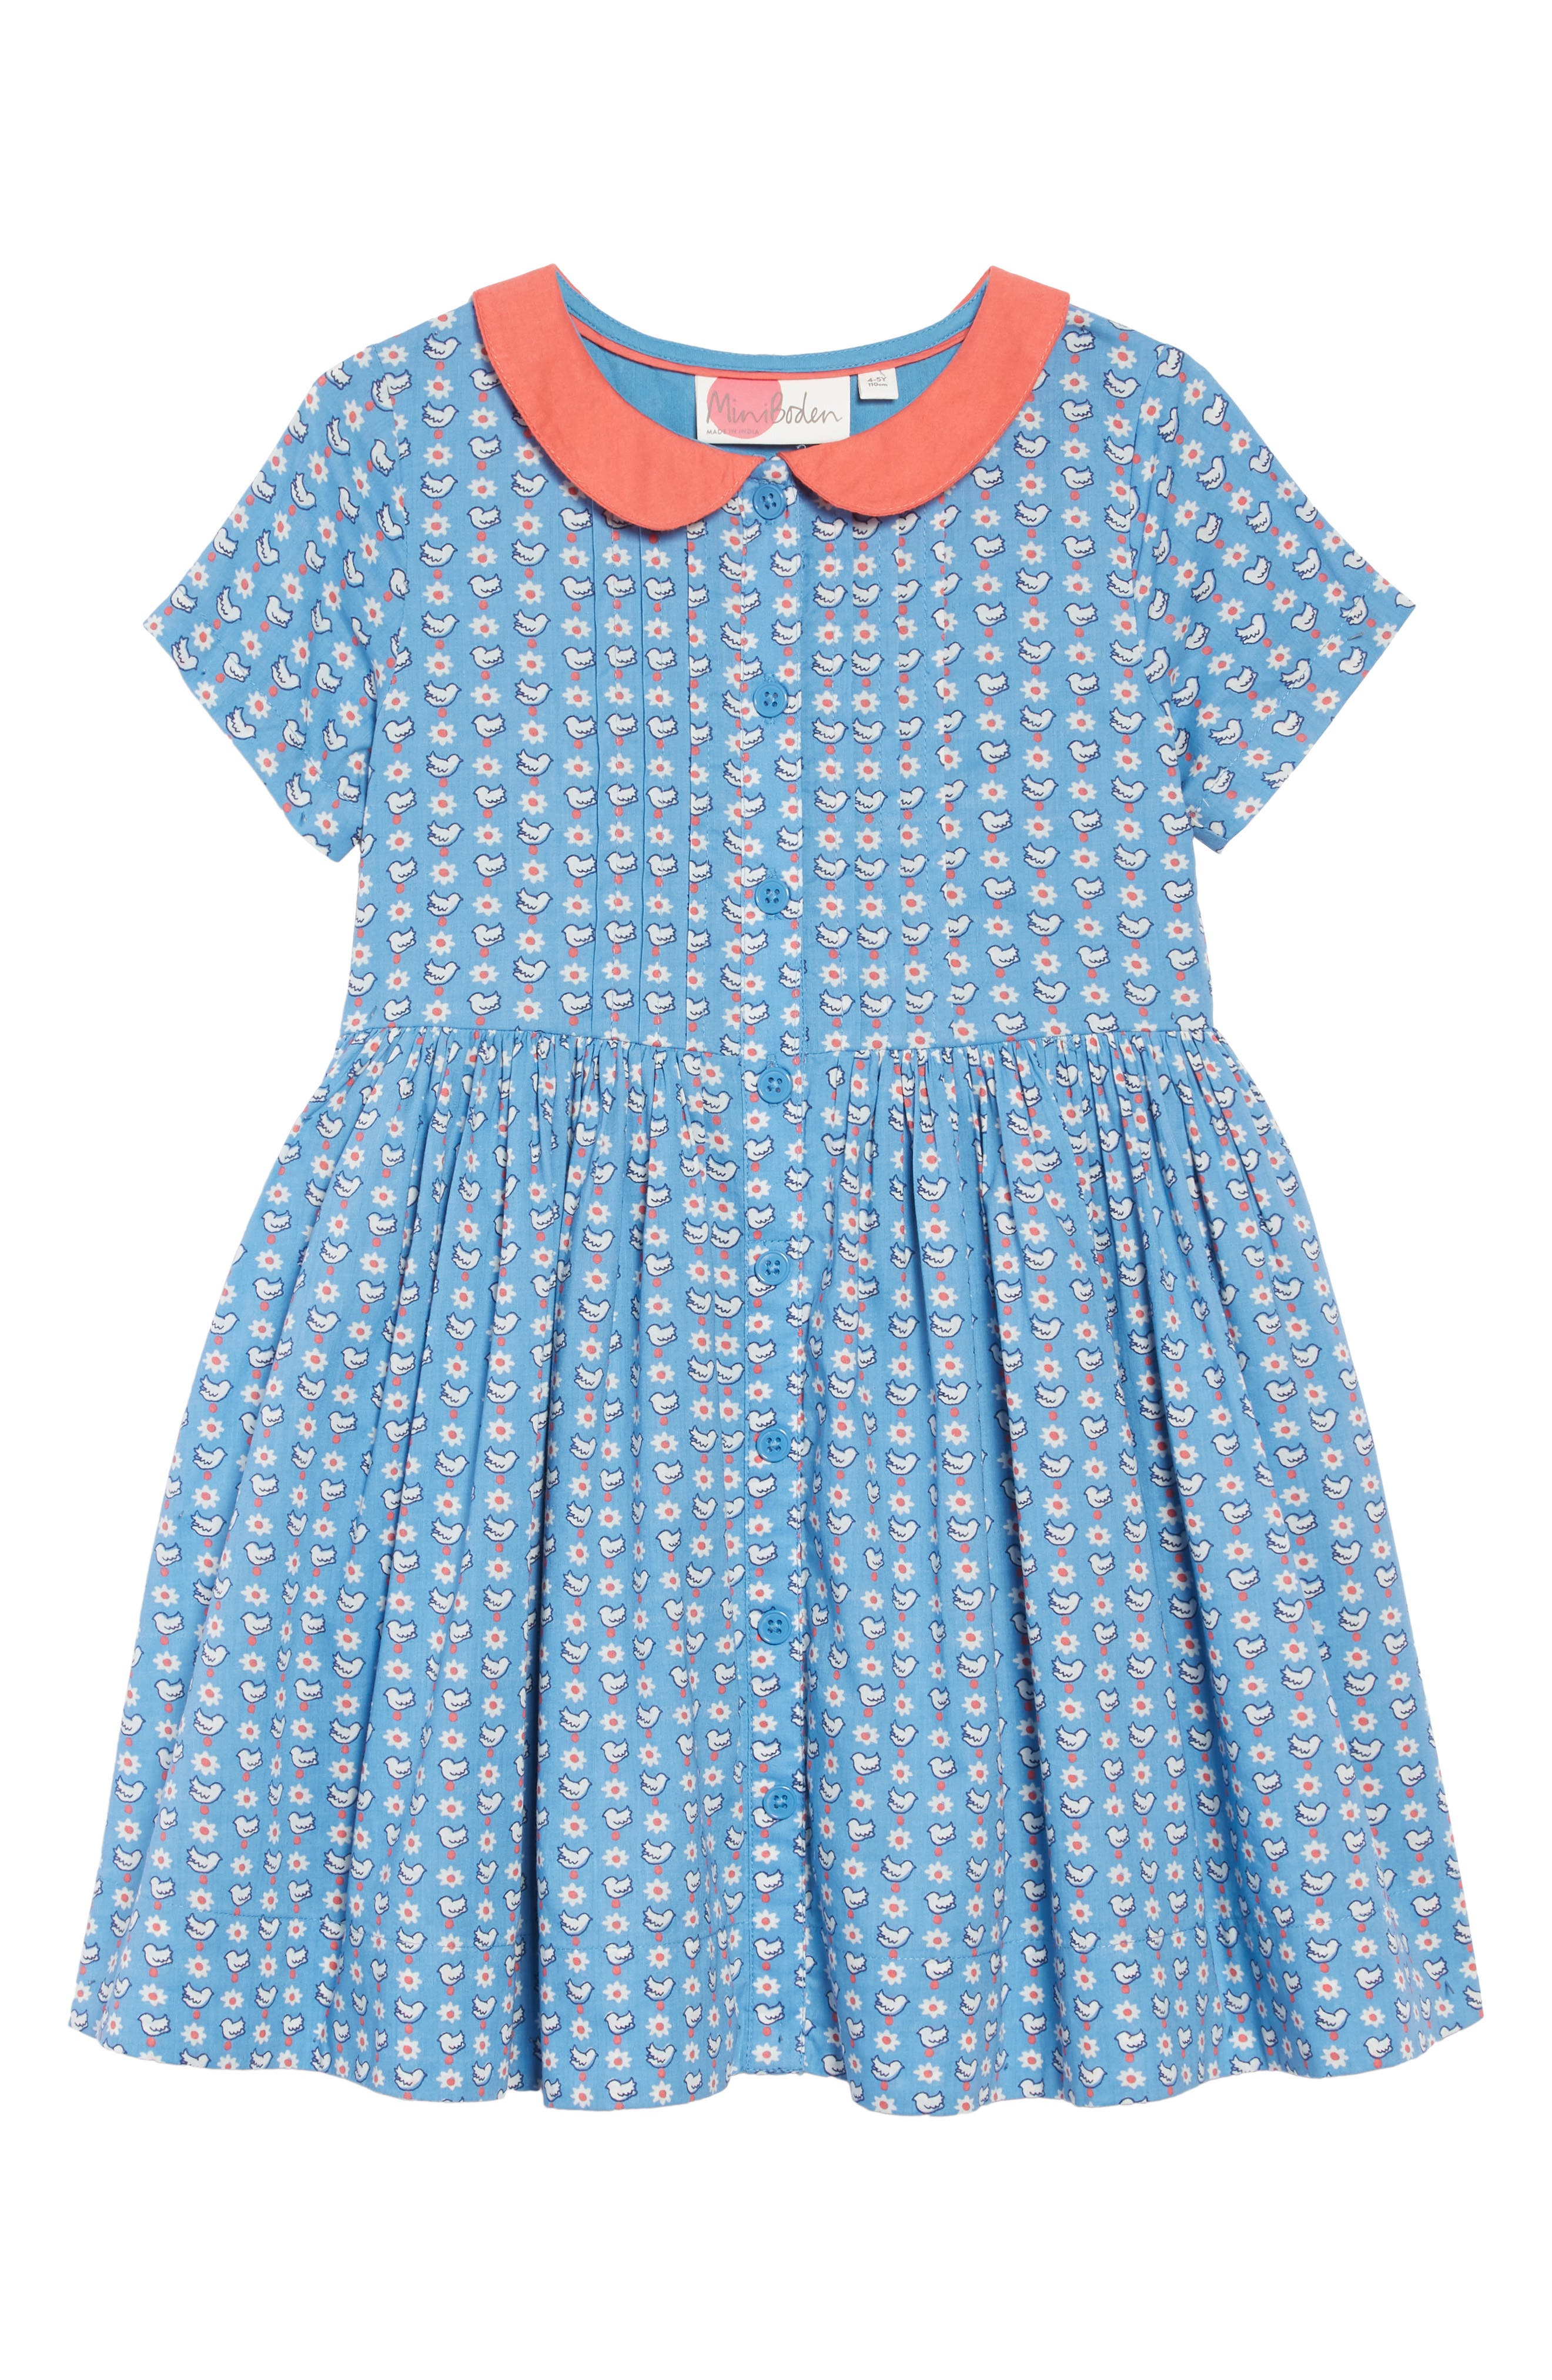 1920s Children Fashions: Girls, Boys, Baby Costumes Toddler Girls Mini Boden Nostalgic Collared Dress Size 3-4Y - Blue $31.20 AT vintagedancer.com